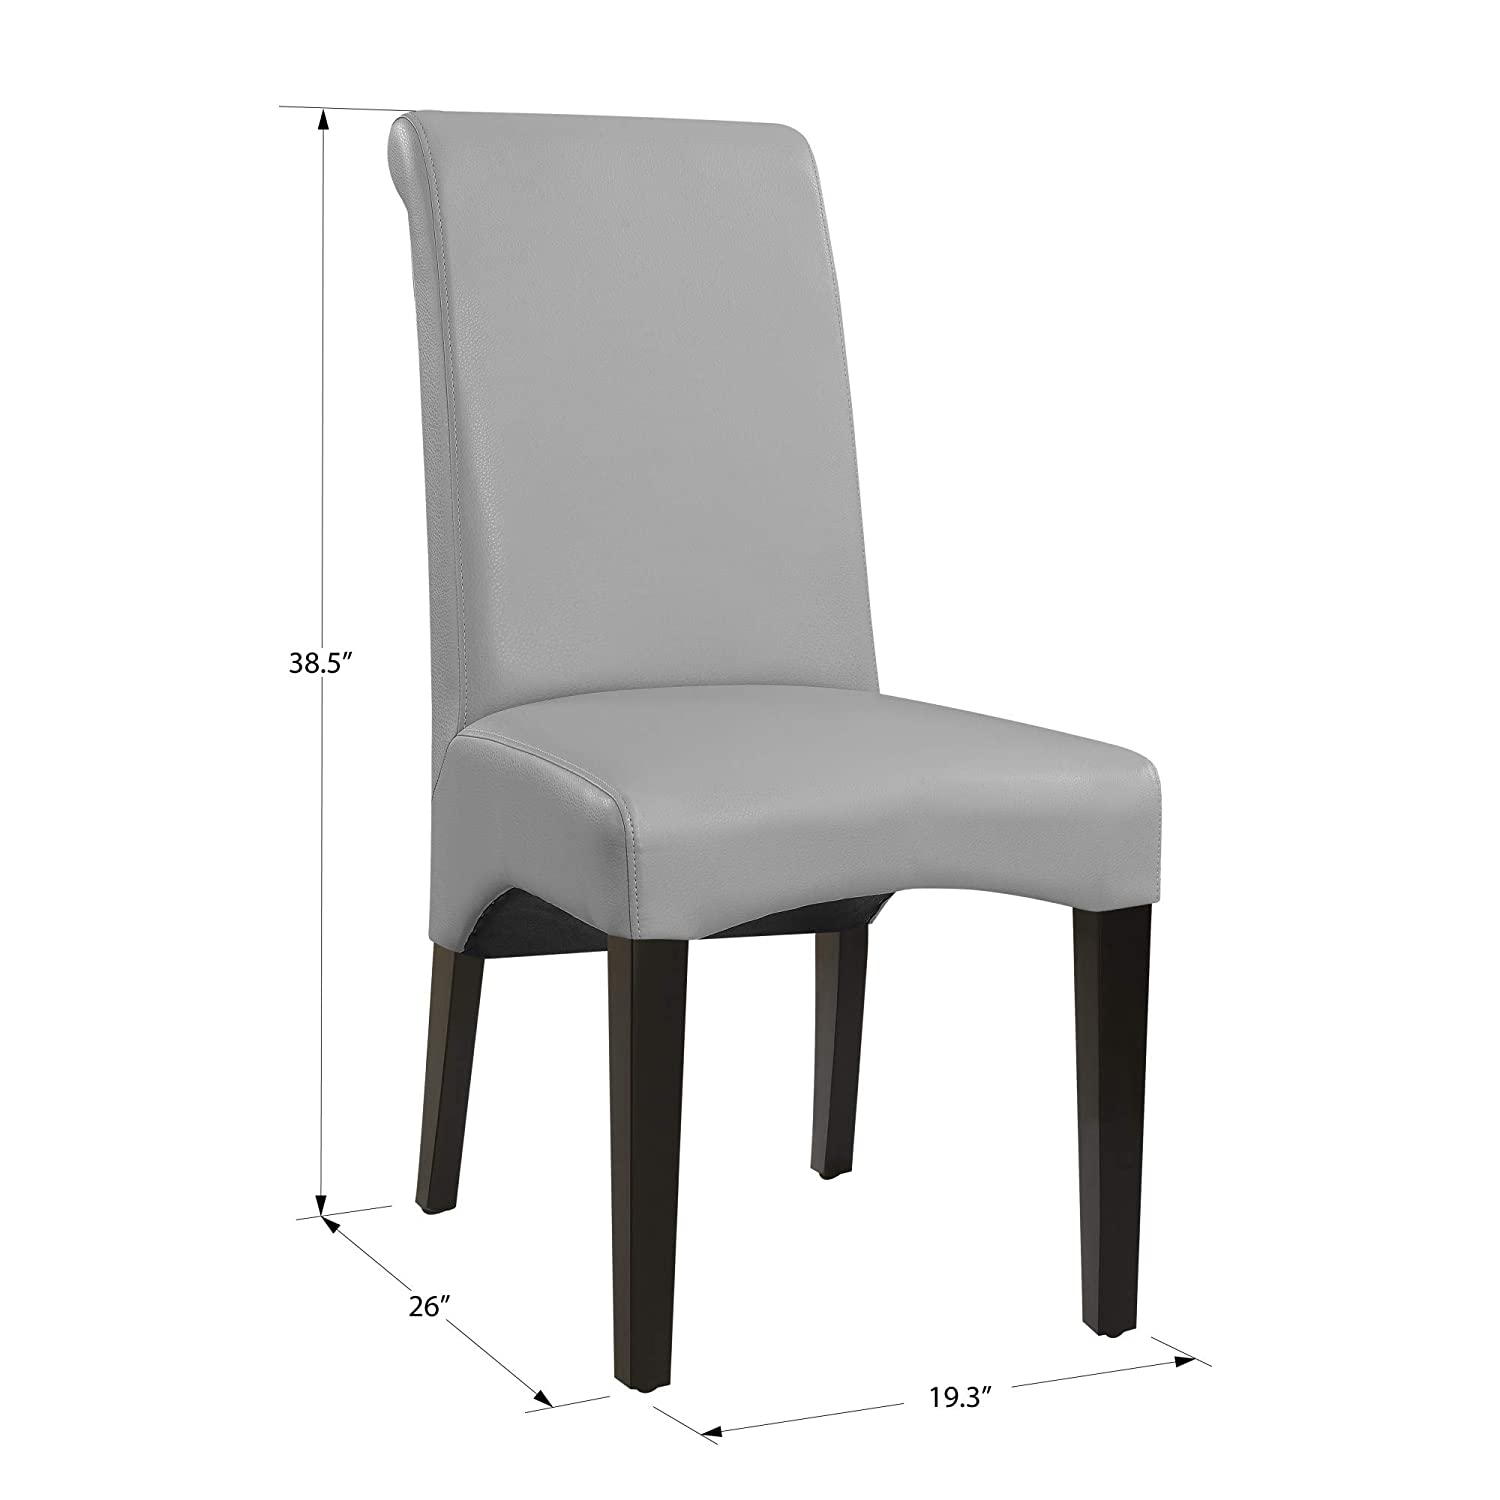 Brilliant Livingston Ii Upholstered Dining Chair In Soft Gray With Faux Leather Upholstery And Curved Back Set Of Two By Artum Hill Andrewgaddart Wooden Chair Designs For Living Room Andrewgaddartcom